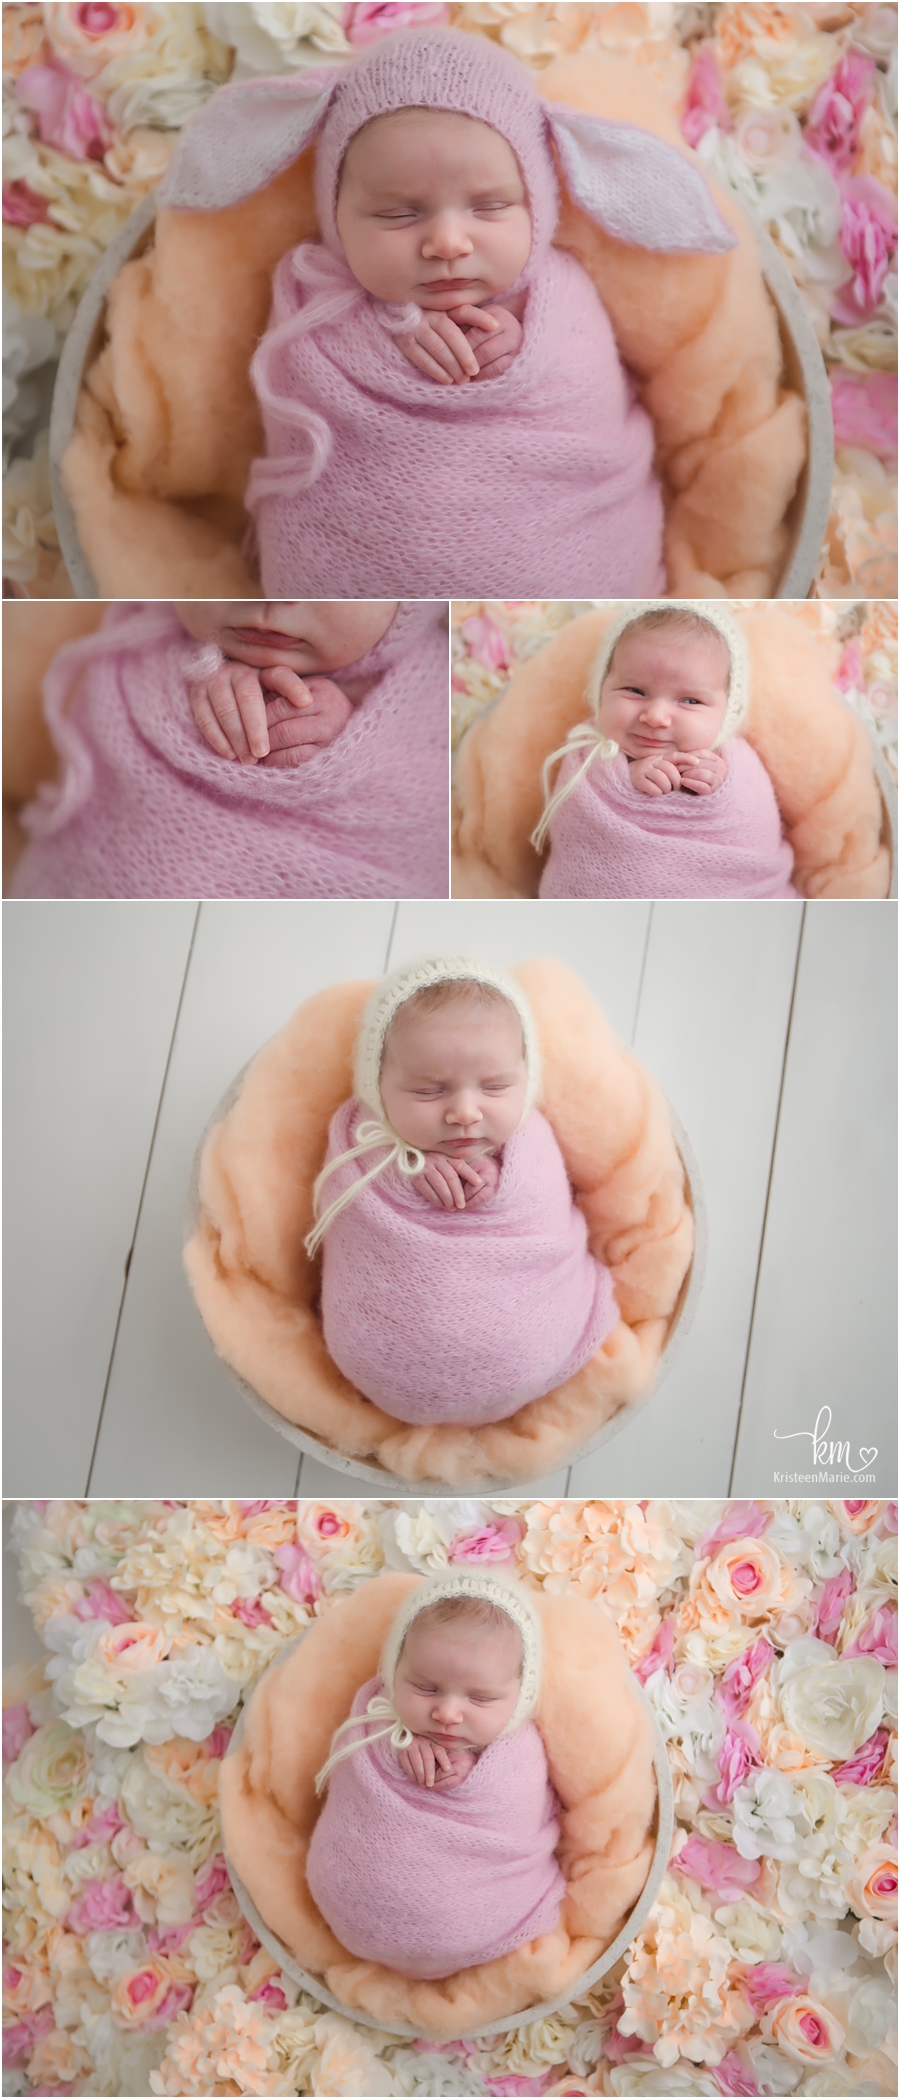 Spring newborn pictures - easter bunny hat on newborn - pink, orange, and cream